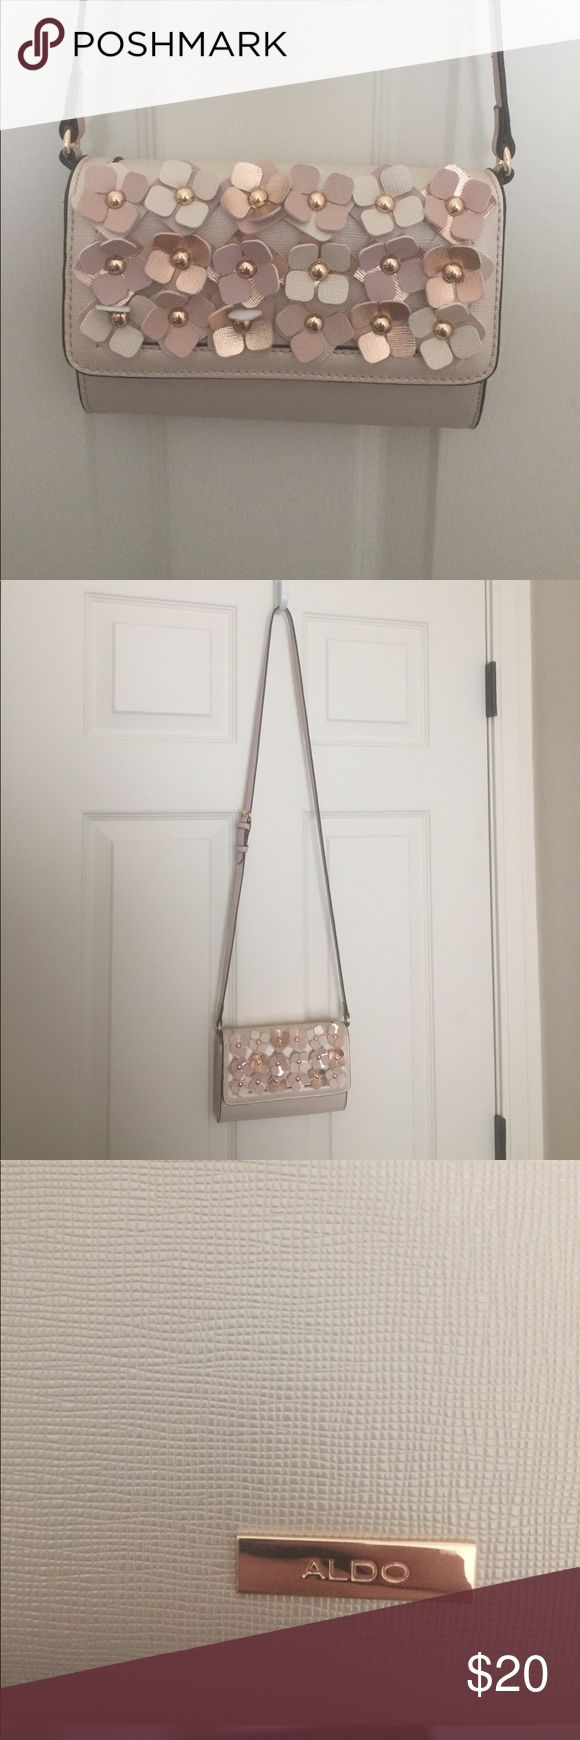 Flower Crossbody Super cute Crossbody bag with pink and beige flowers. Lots of space and strap is adjustable. Gold finishings. NWOT. Aldo Bags Crossbody Bags